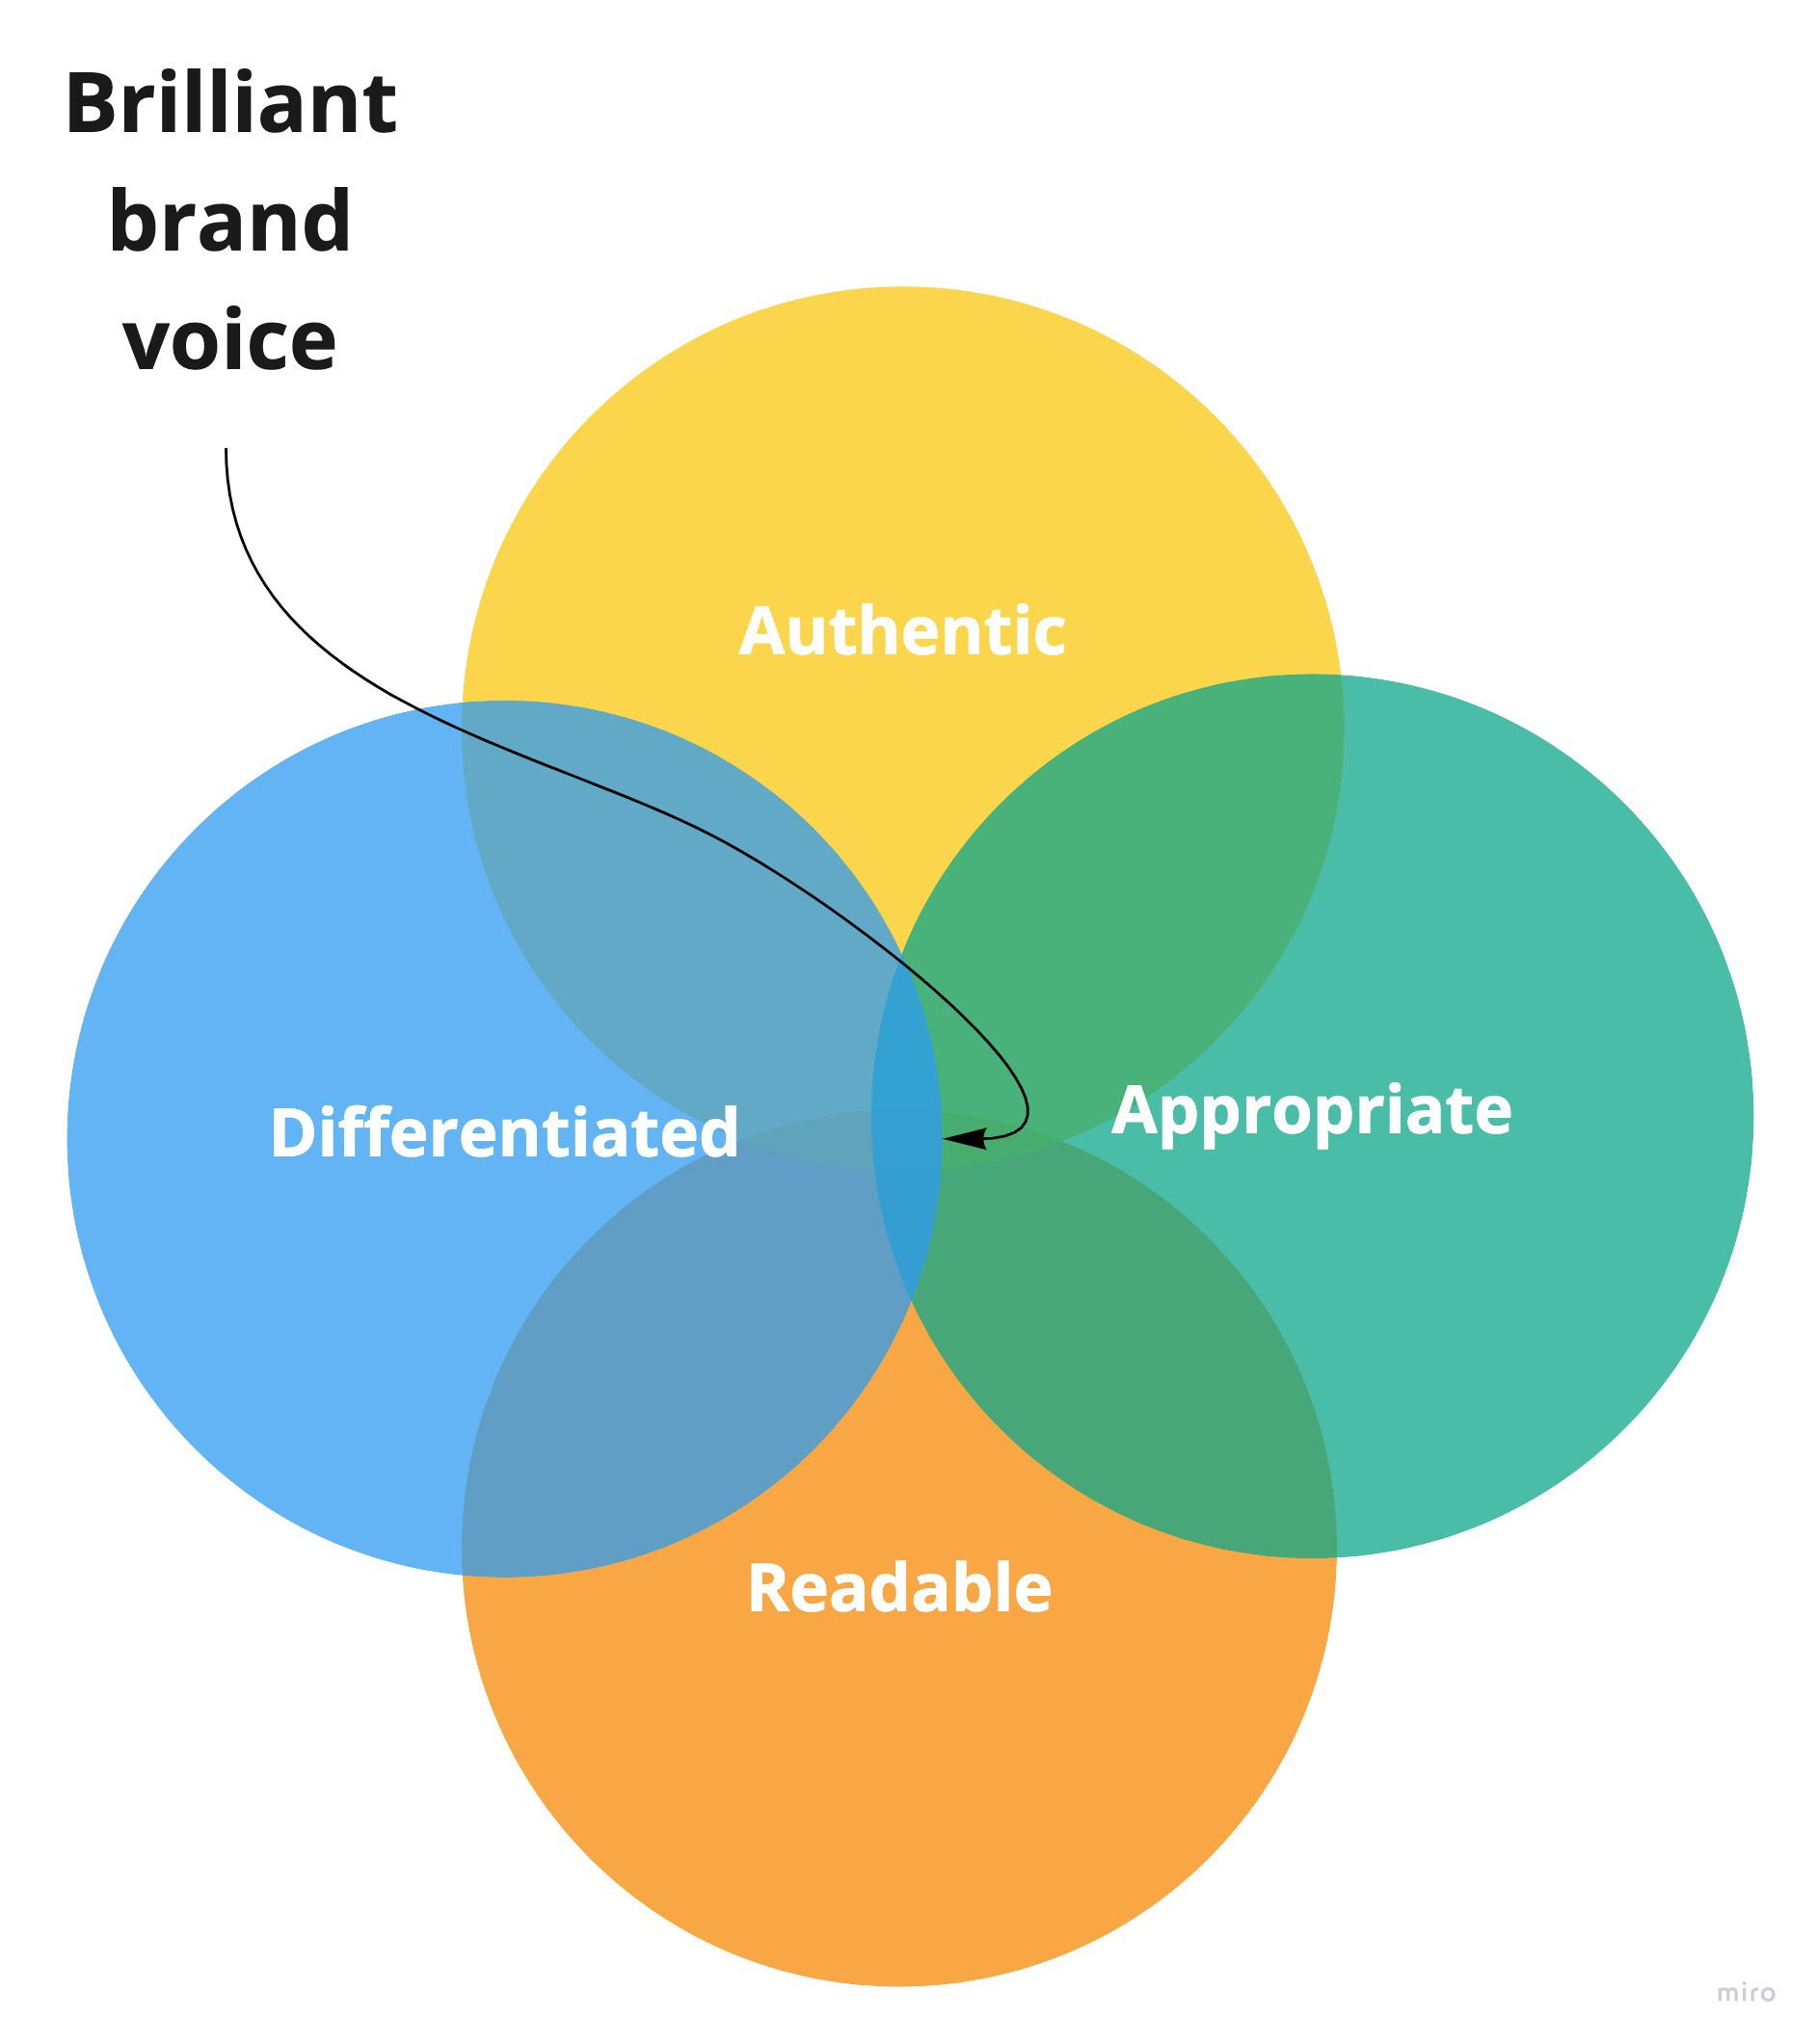 A Venn diagram of authentic, differentiated, appropriate and readable, with brilliant in the overlap of all four.